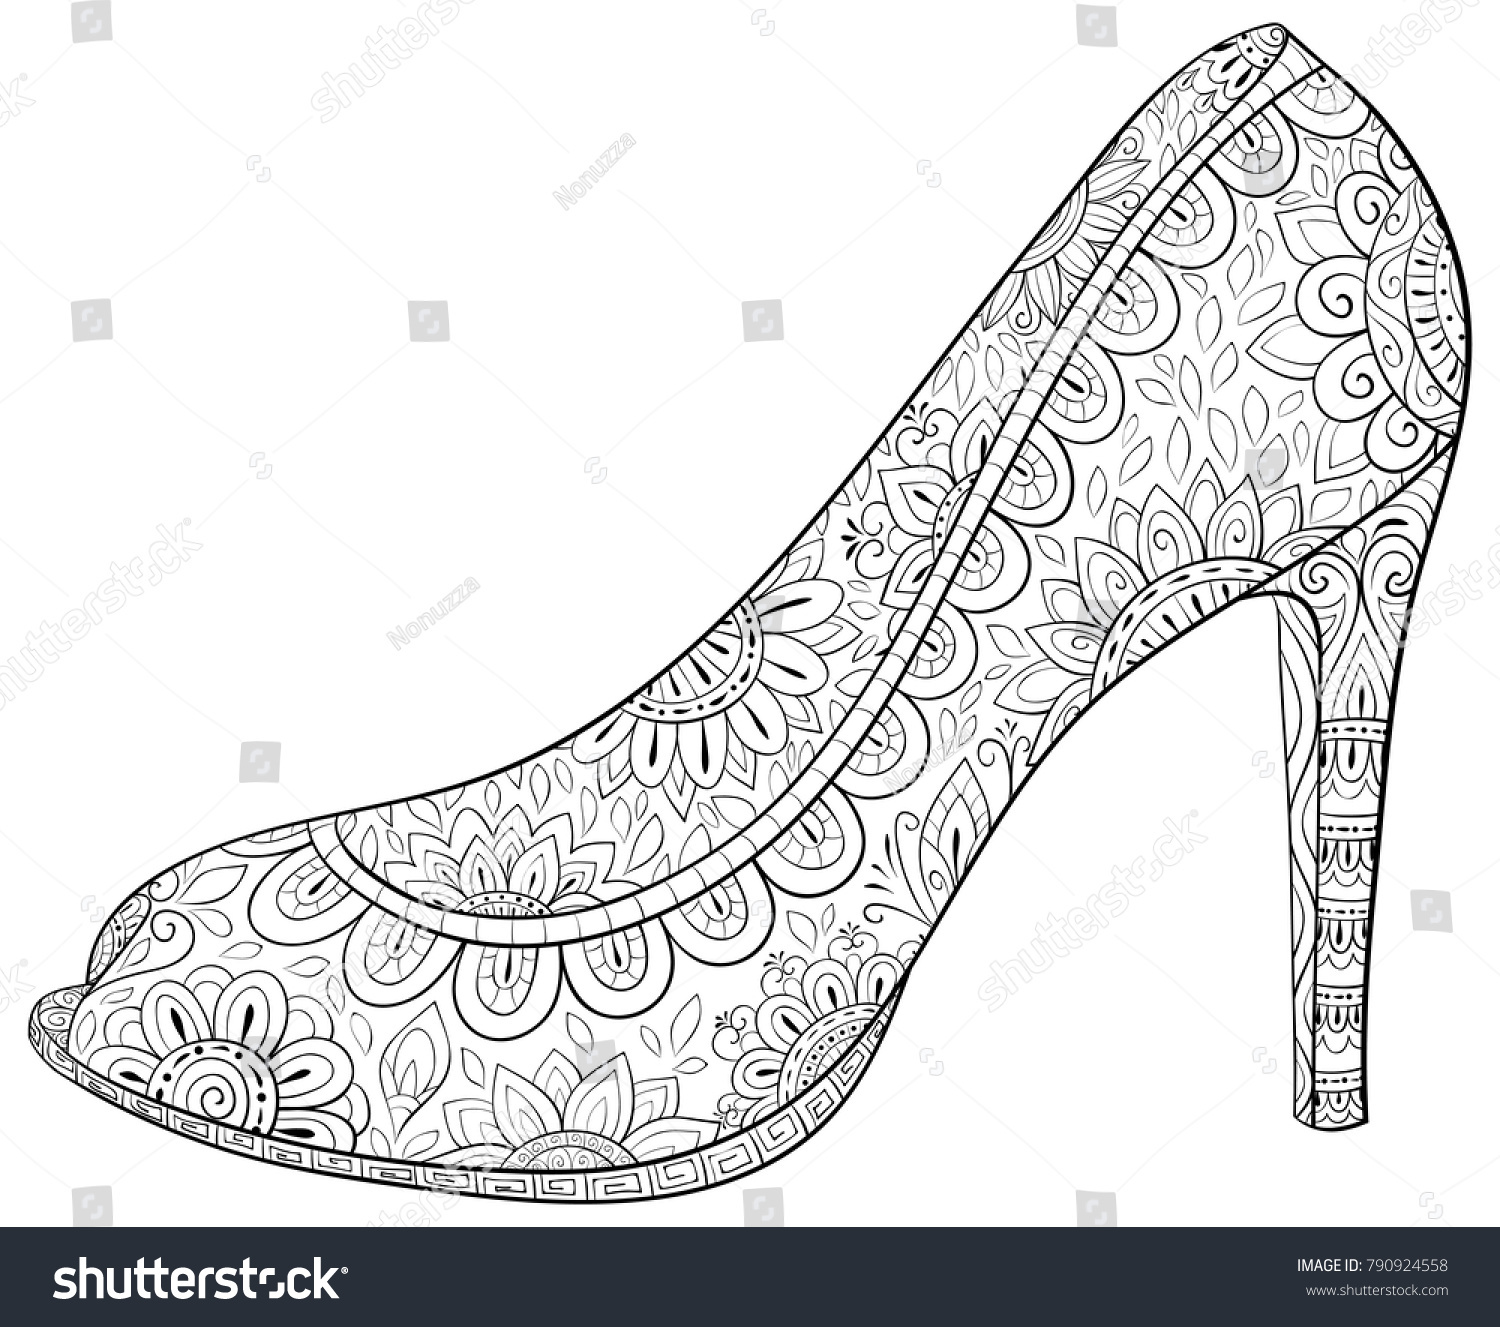 Adult Coloring Pagebook A High Heel Shoes For RelaxingZen Art Style Illustration